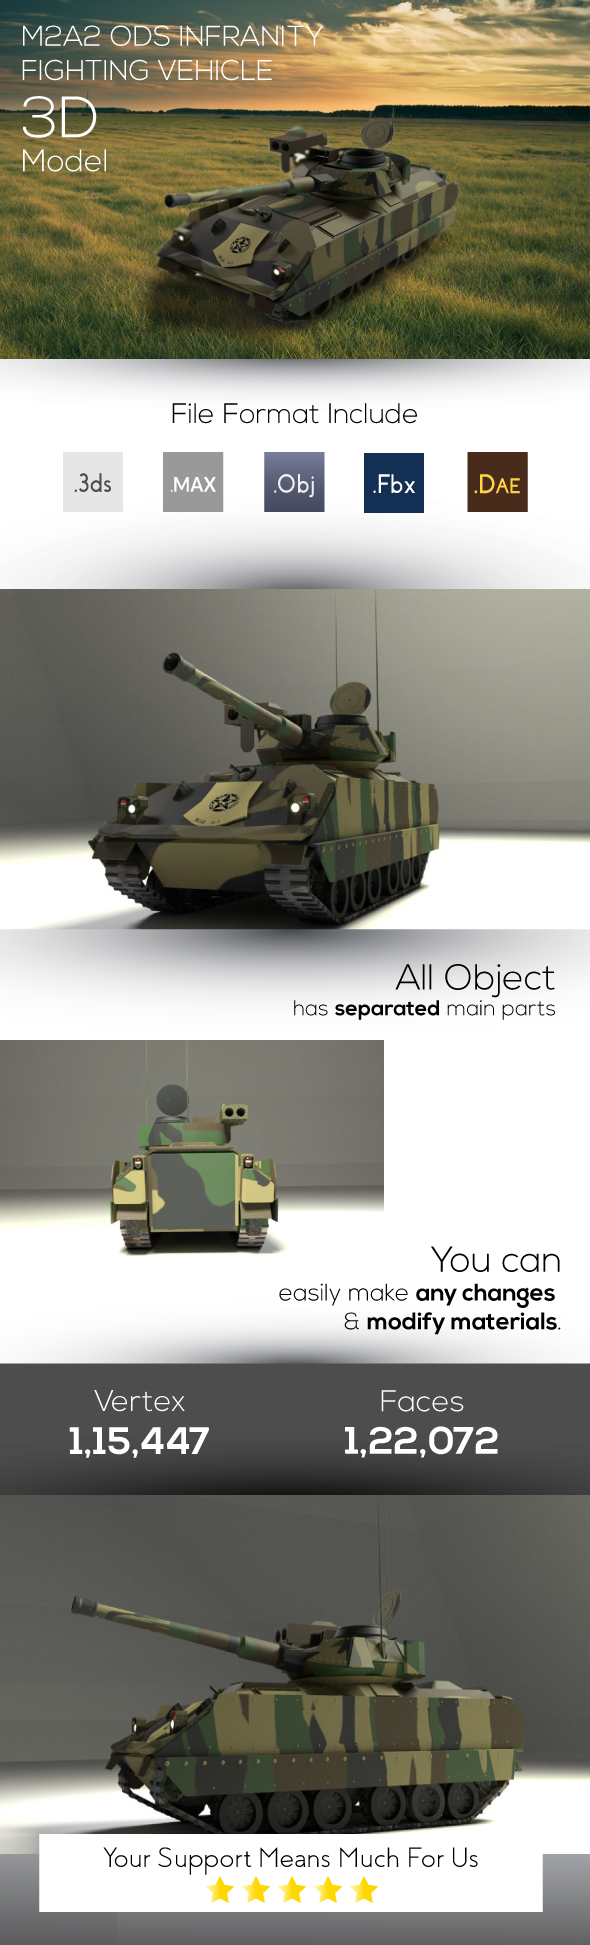 3DOcean M2A2 Infranity Fighting Vehicle 3D Model 19910905